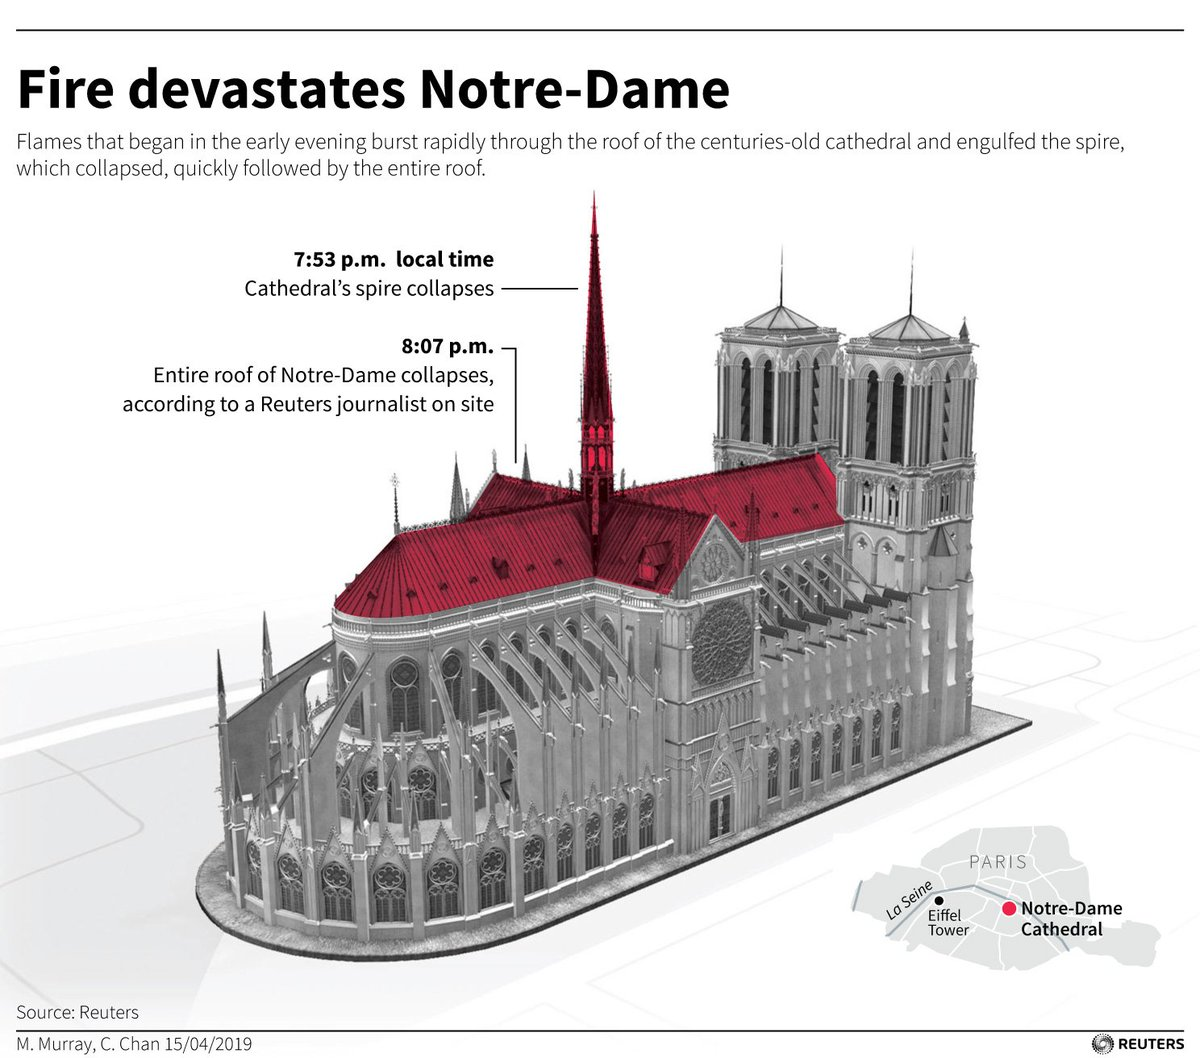 MORE: Macron says he will launch an international fundraising campaign for Notre-Dame cathedral https://reut.rs/2KGbB8a